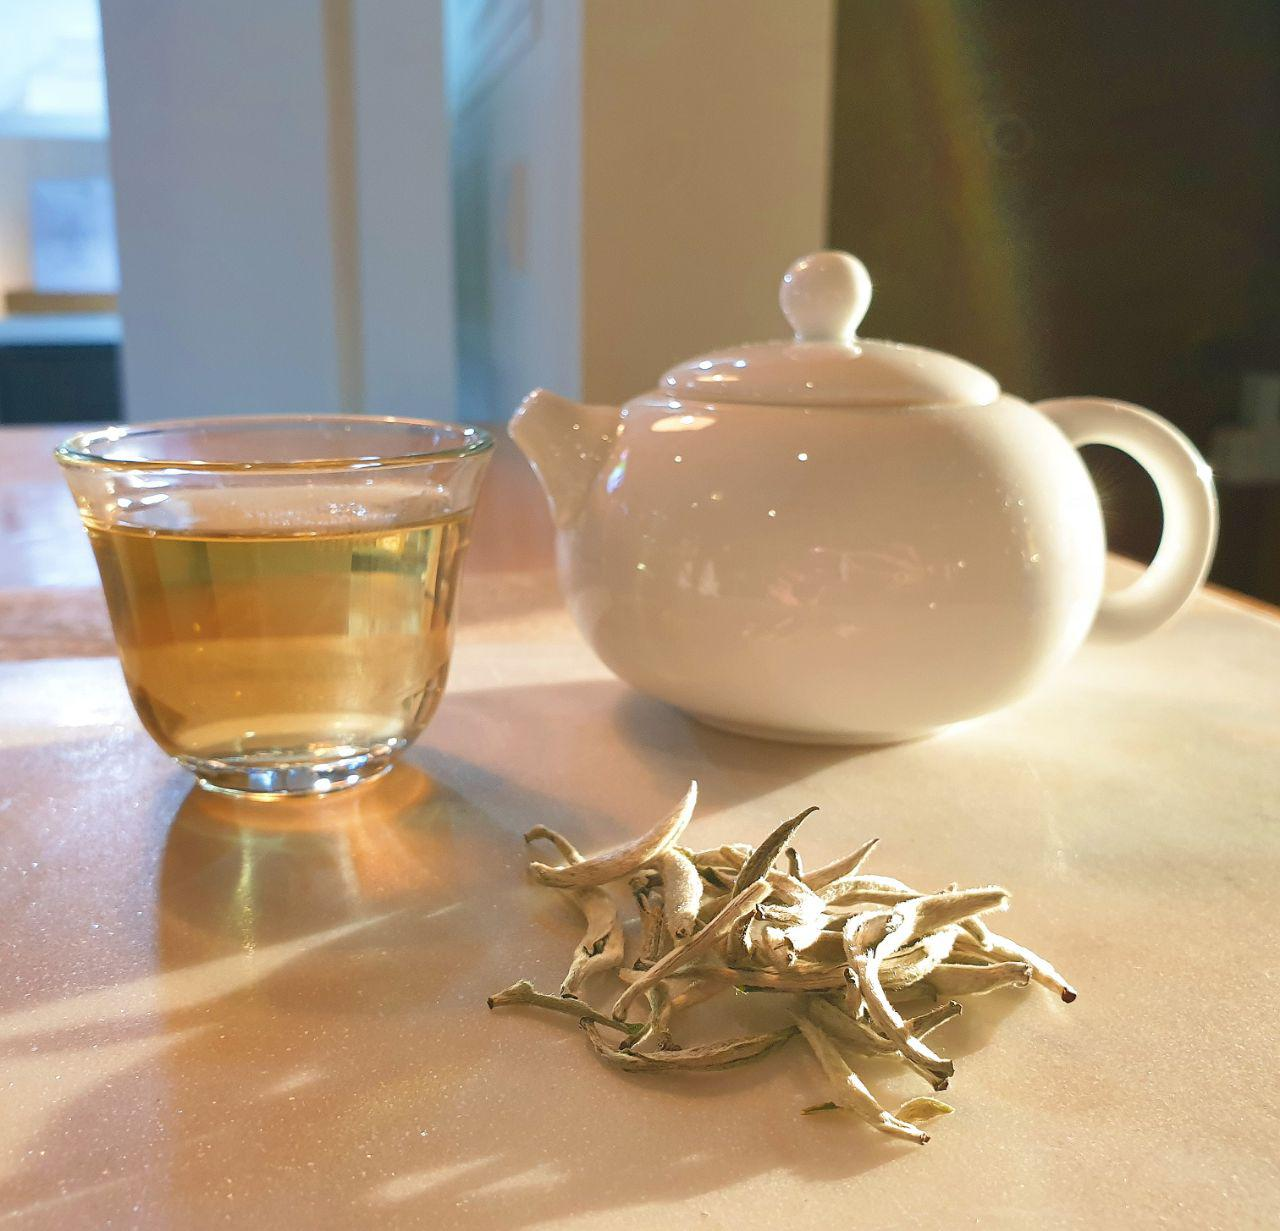 WHITE TEA IS THE LEAST PROCESSED AMONG ALL TRUE TEA TYPES. - Tea is a plant that gives us the beverage TEA. Anything that is not steeped from the leaves and buds of the tea plant is not tea in the strictest sense, but a tisane—a herbal infusion.. There are only 6 types of teas which are defined by the process that makes them:BLACK TEA, GREEN TEA, WHITE TEA, YELLOW TEA, OOLONG, PUERH TEA.The least processed the leaves are, the highest amount of polyphenols it can retain.The tea plant has over 30,000 different polyphenols and white tea retains the highest amount of polyphenols since it is the least processed.